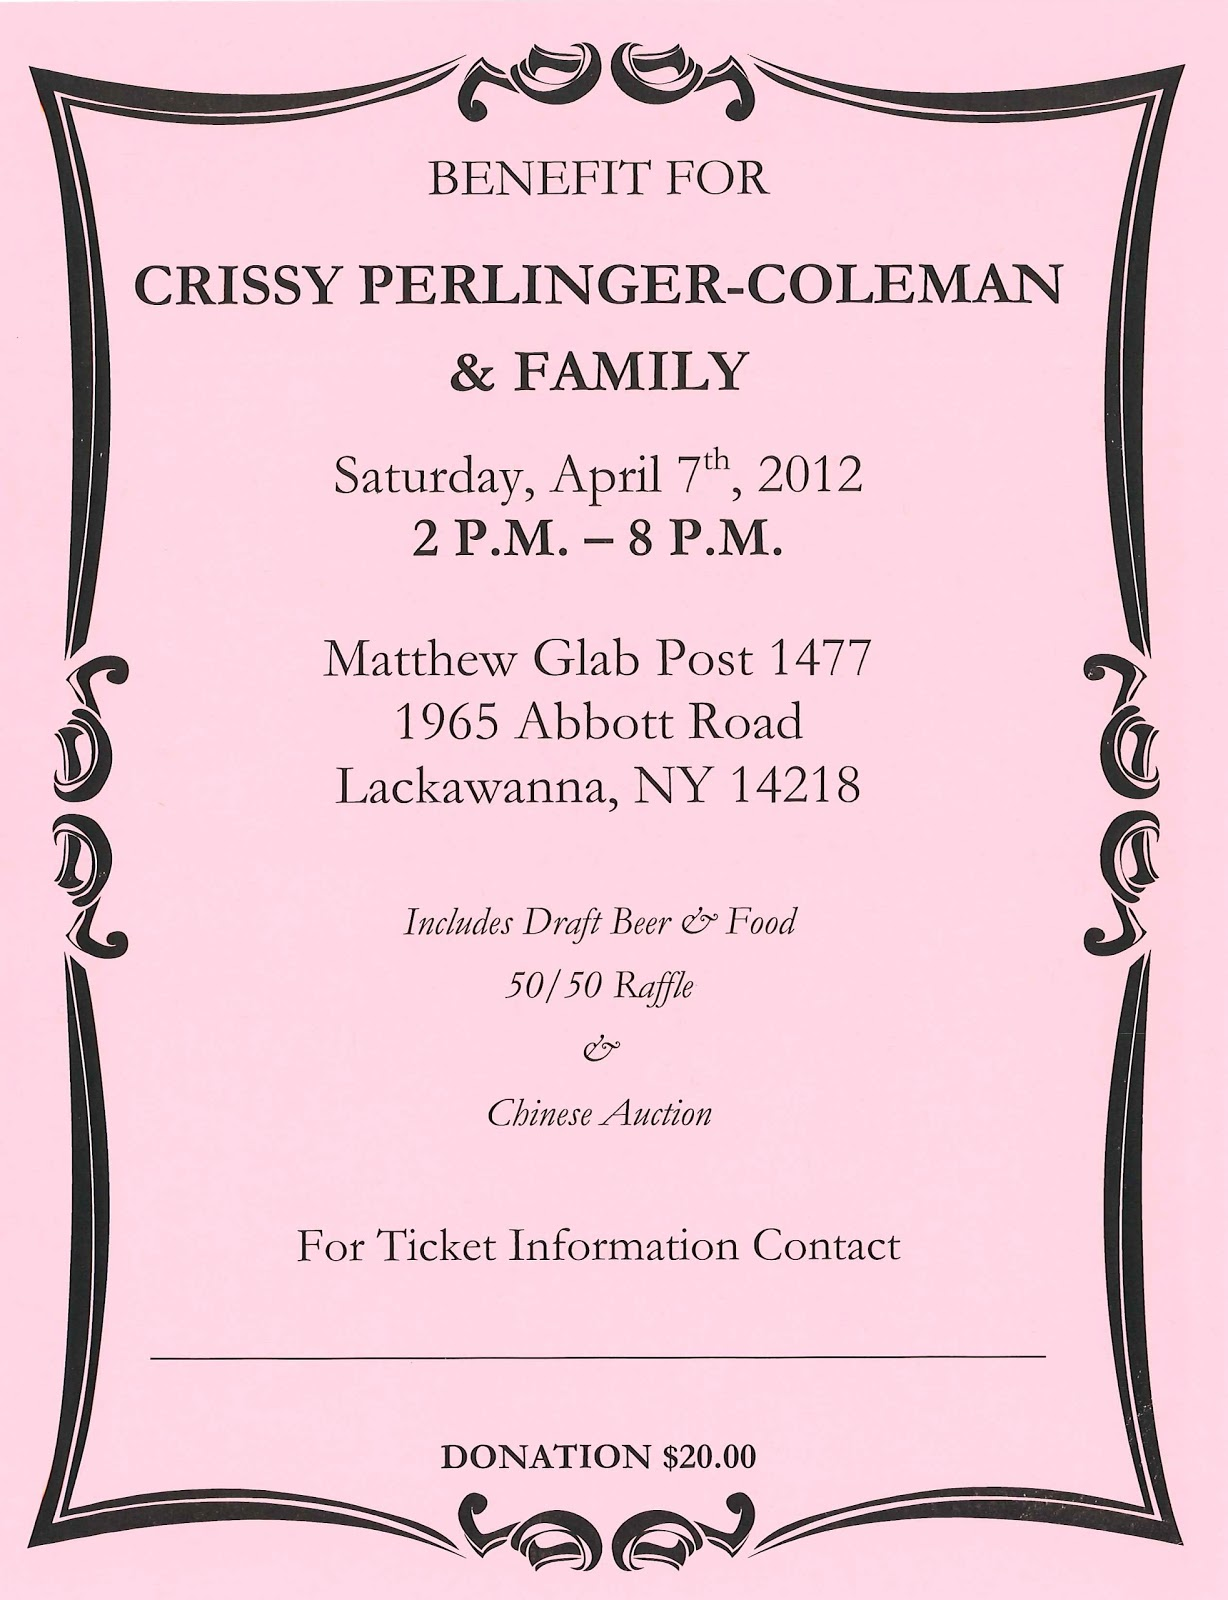 fighting cancer with crissy 2012 benefit flyer. Black Bedroom Furniture Sets. Home Design Ideas